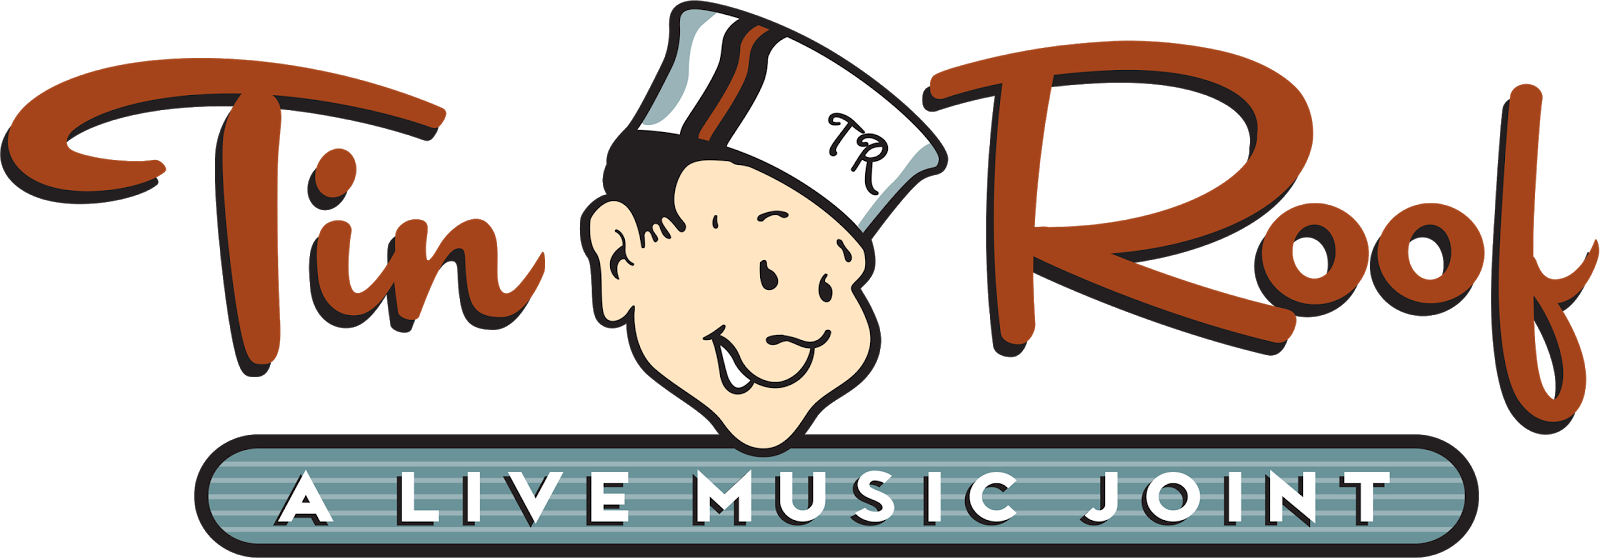 Tin-Roof-LOGO-2012